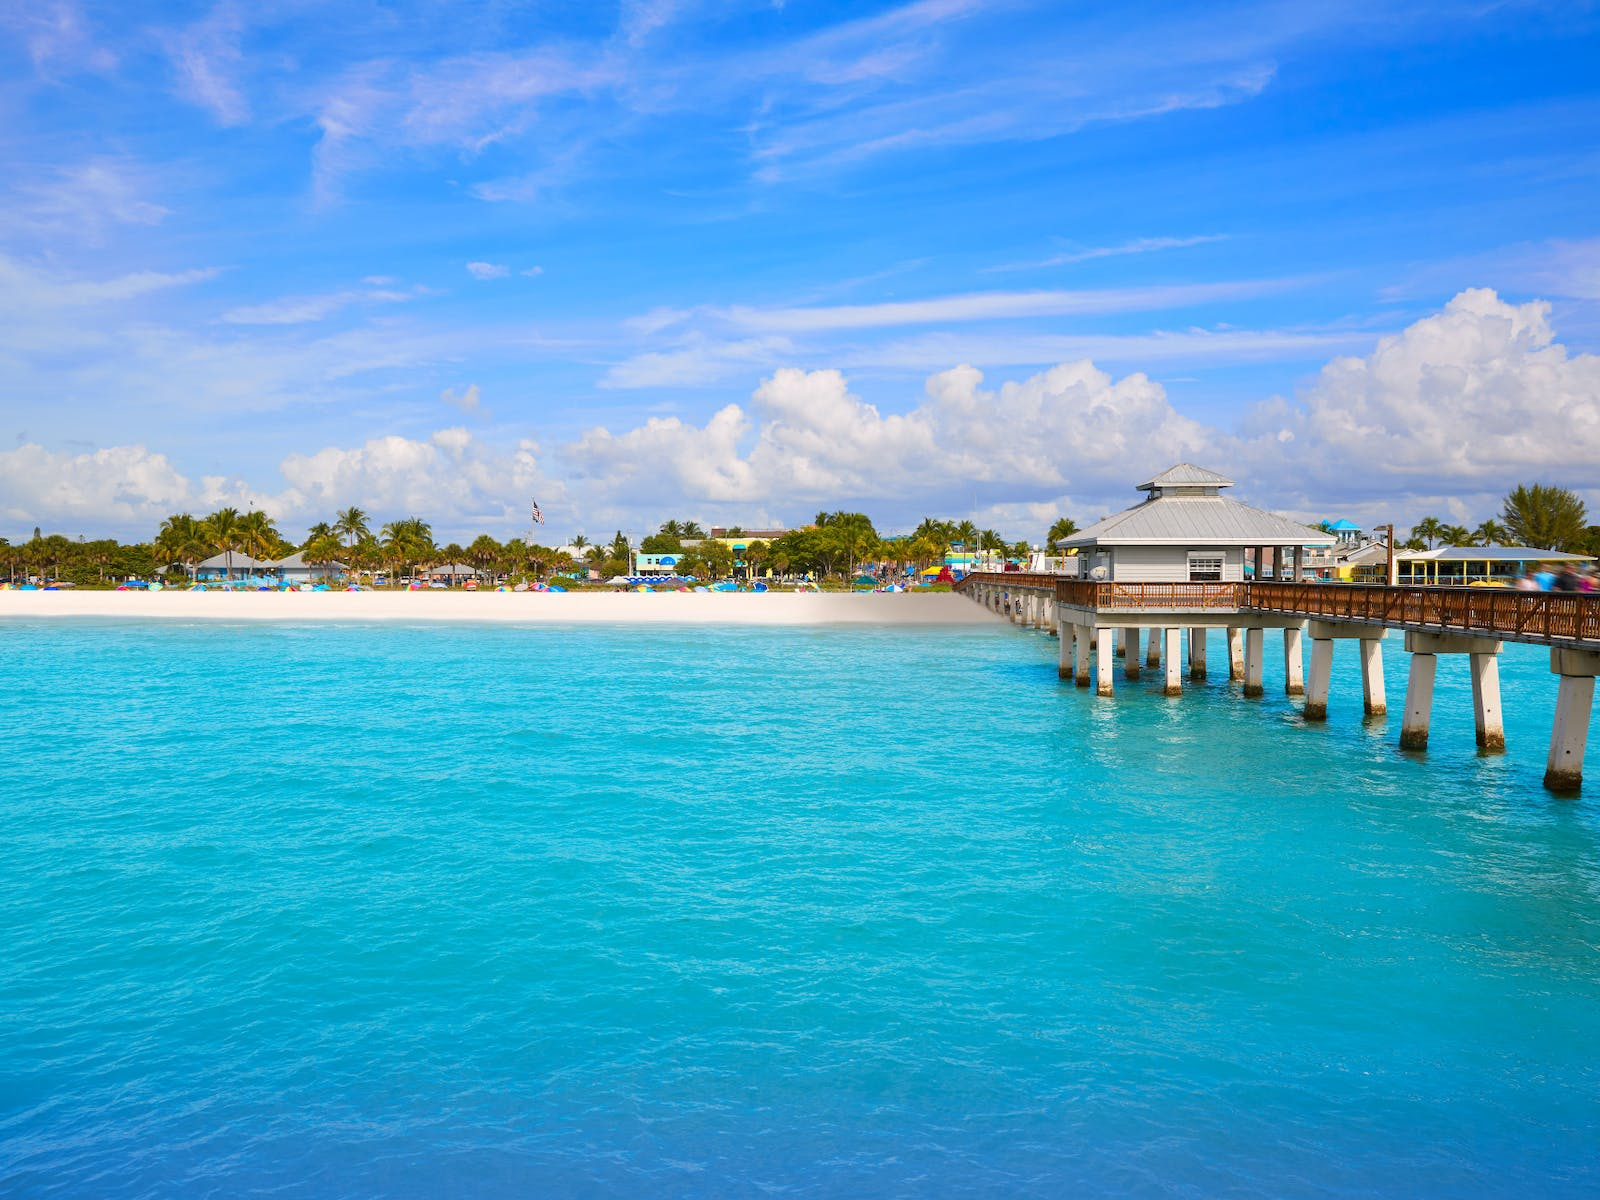 The 8 Best Beach Towns Near Tampa For